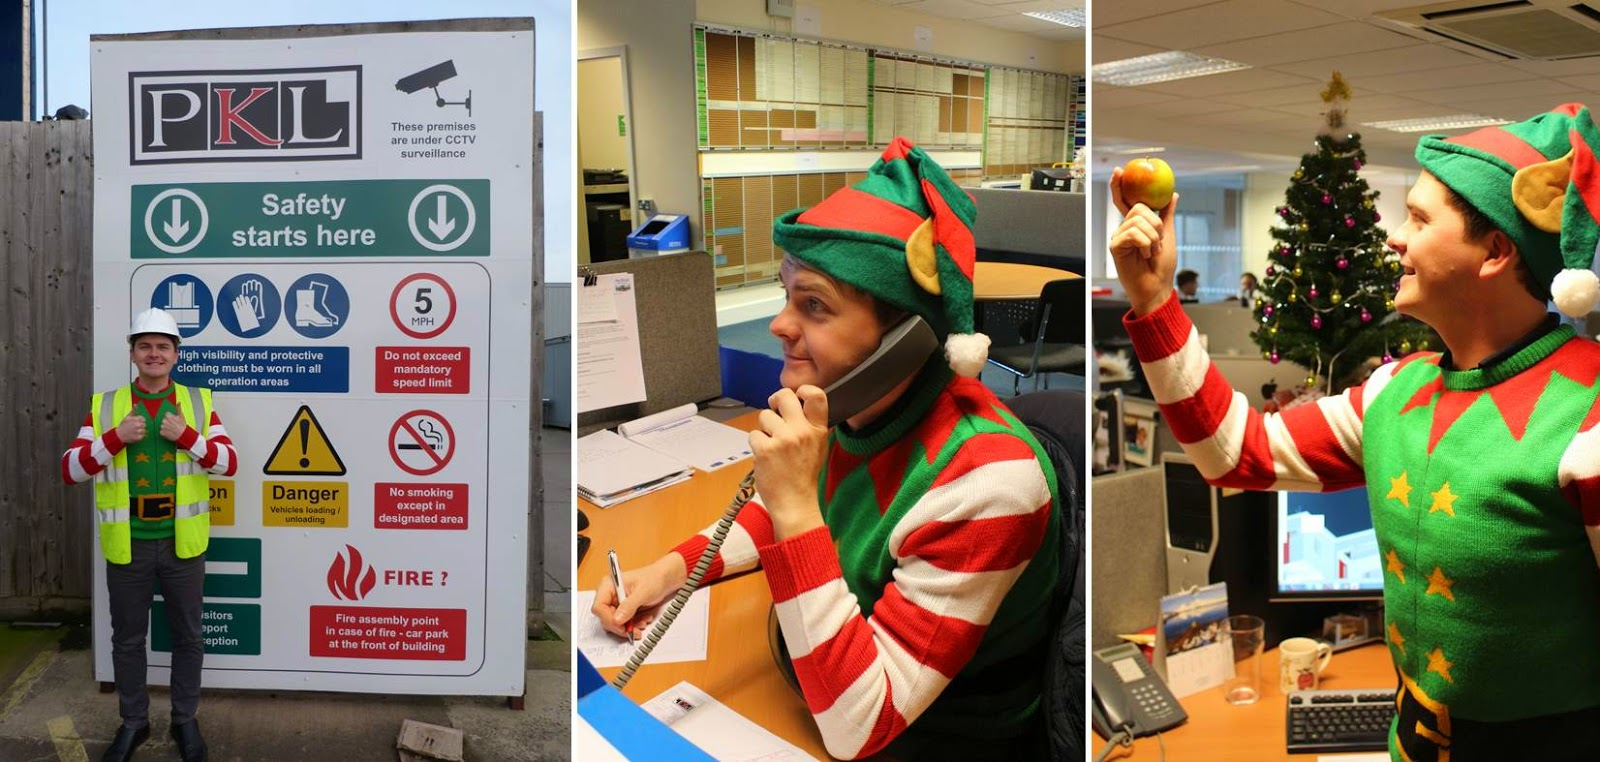 PKL Christmas - Elf and Safety